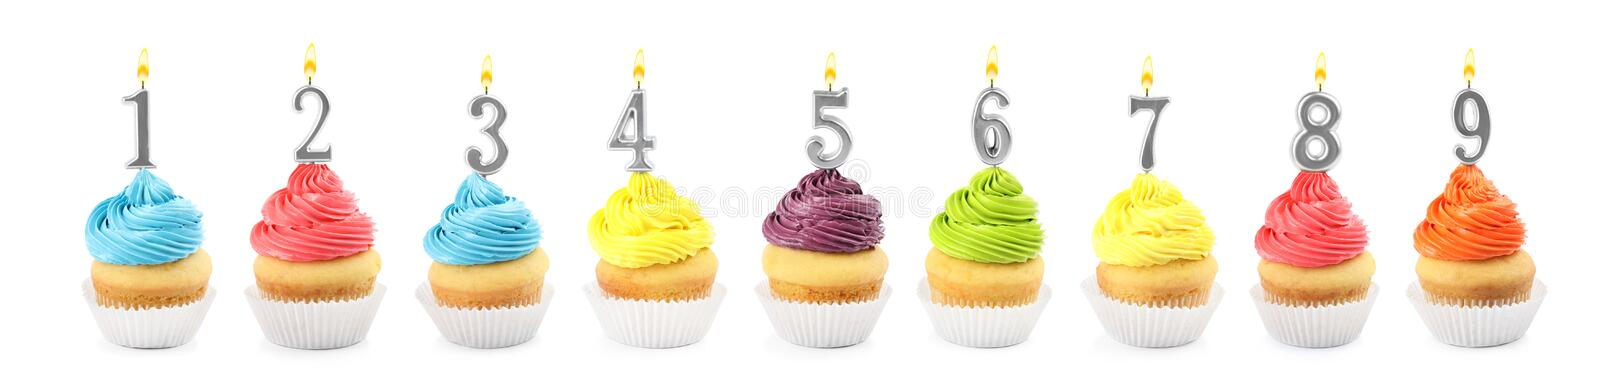 Set of different delicious birthday cupcakes with burning candles on white. Banner design royalty free stock image